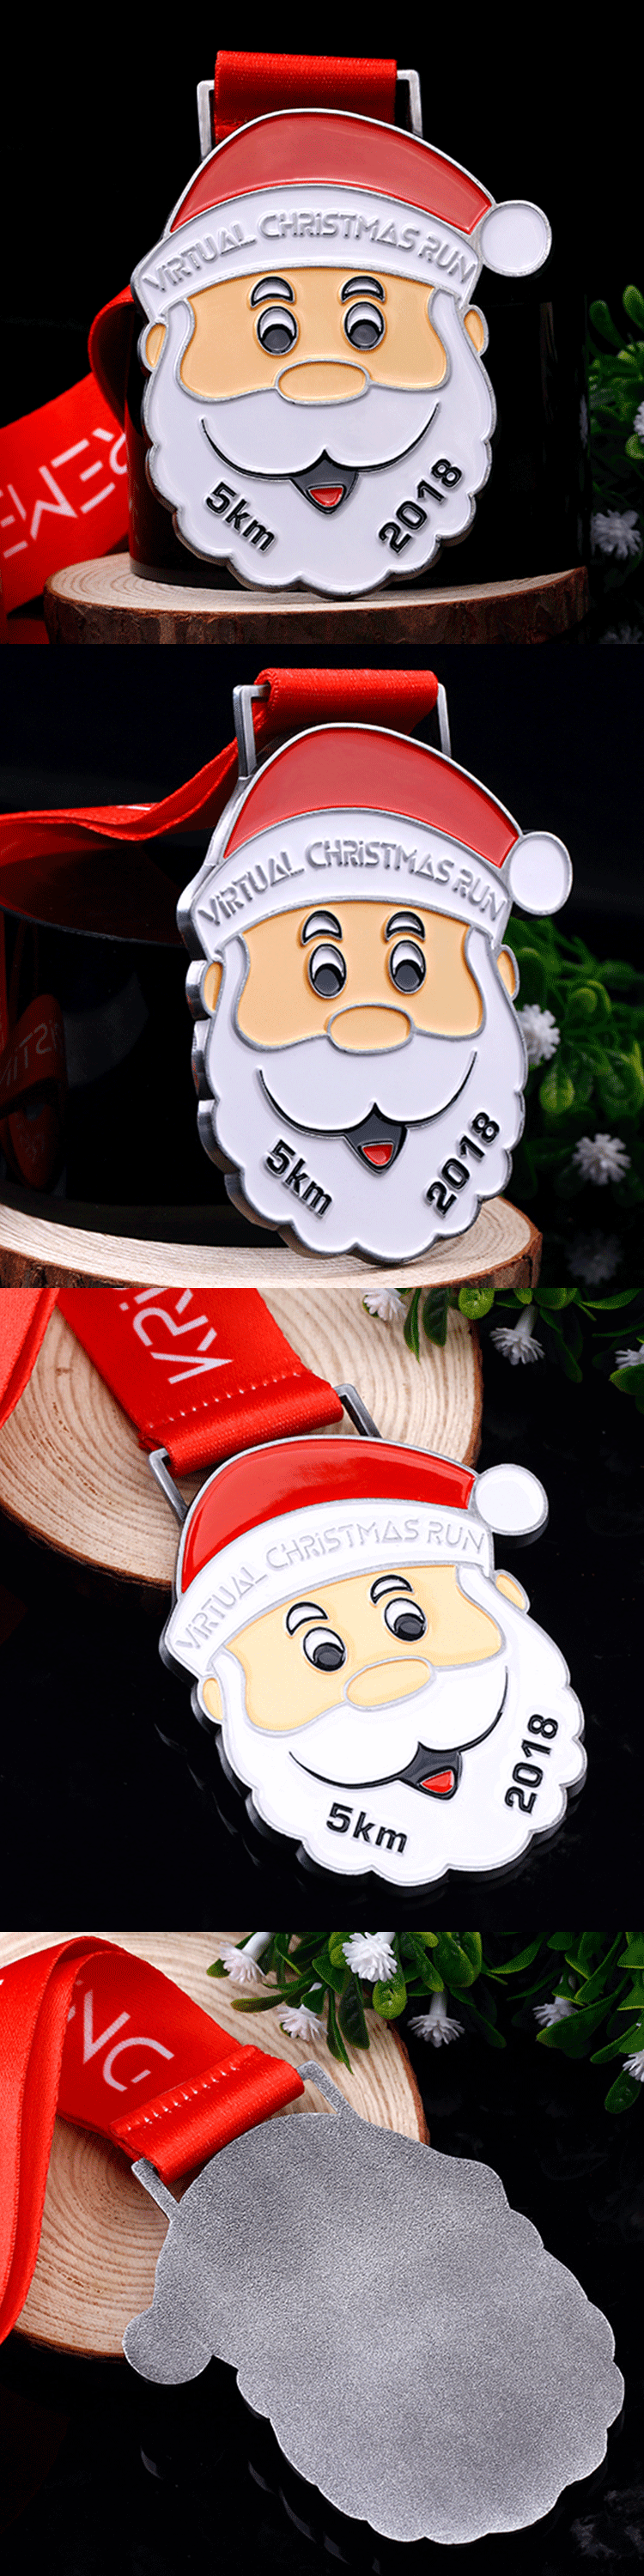 Custom Christmas 5km half marathon running sports medal